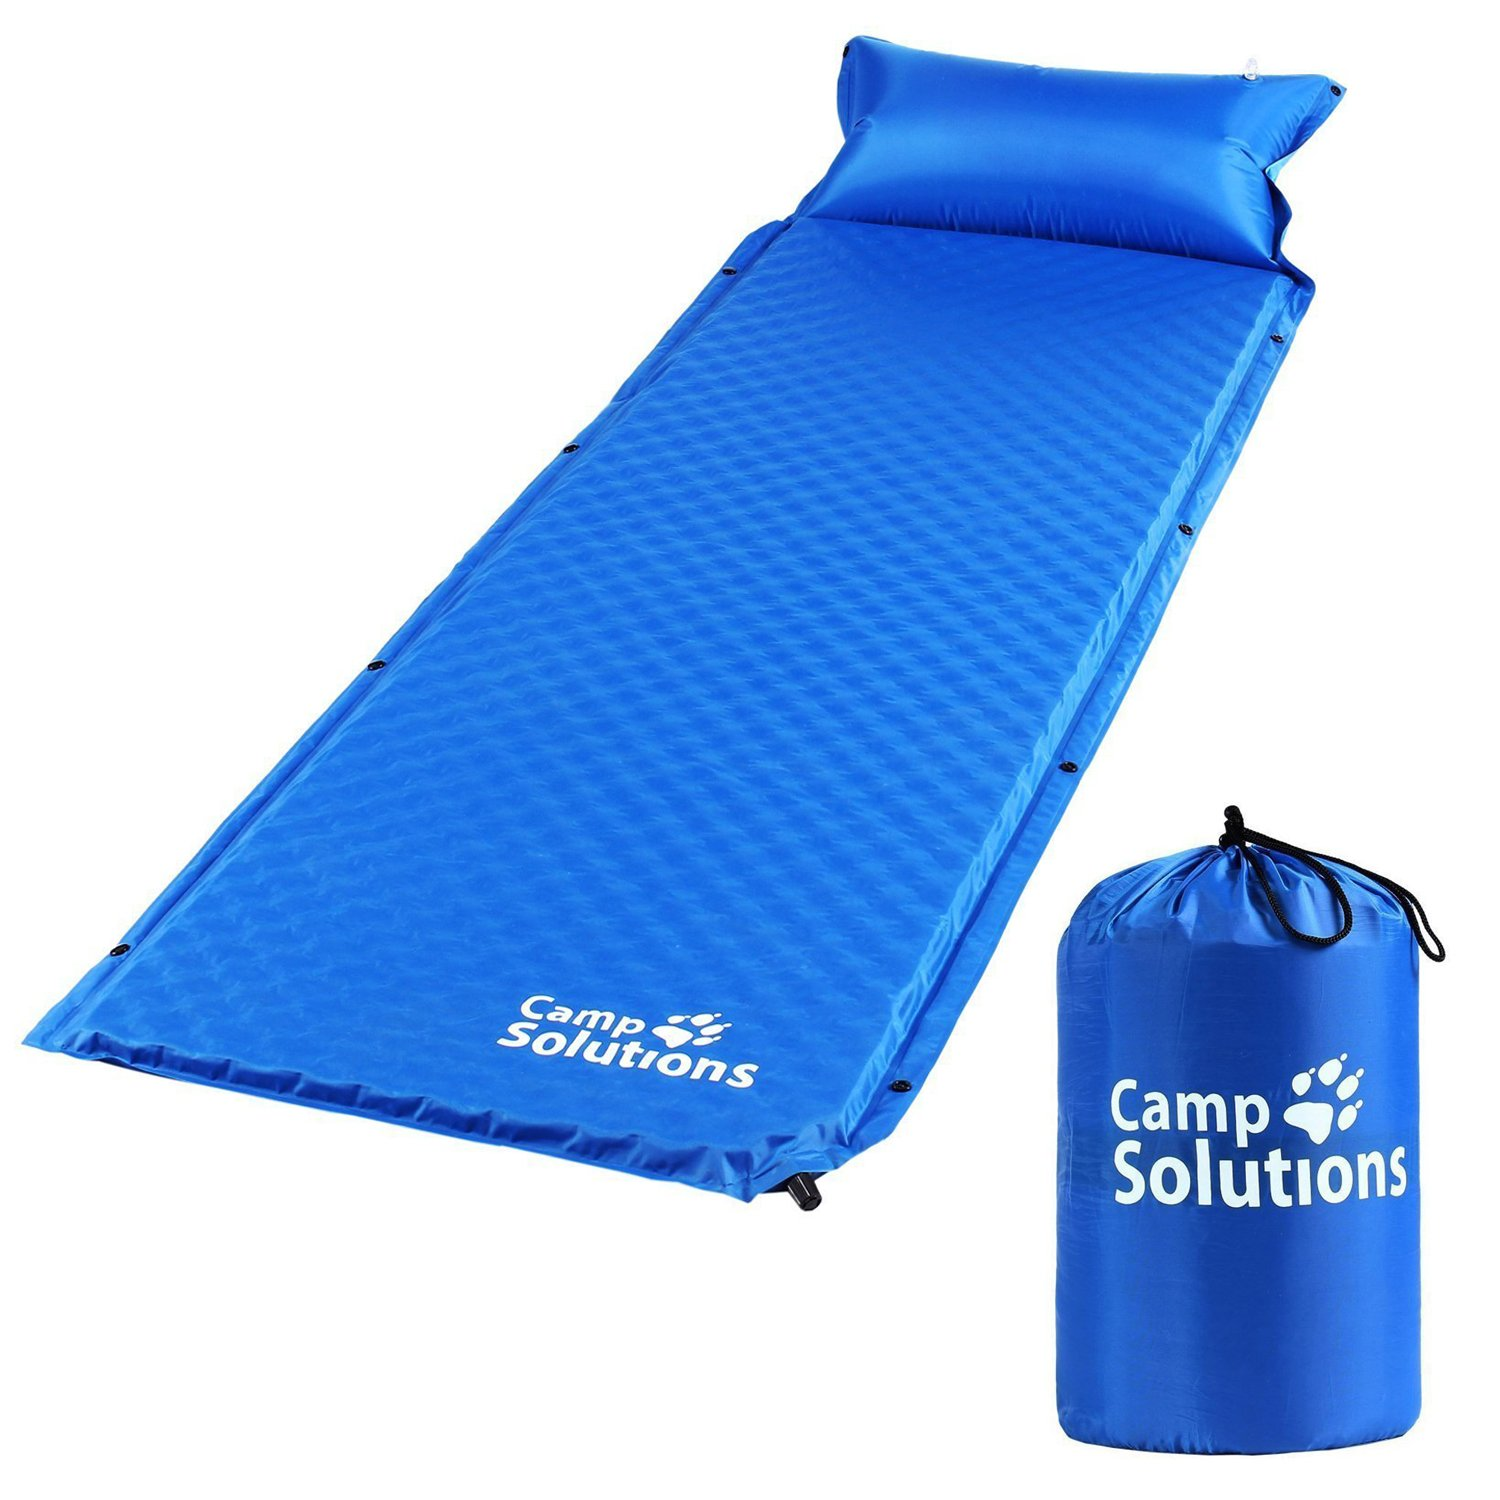 Camp Solutions Self Inflating Sleeping Pad with Attached Pillow